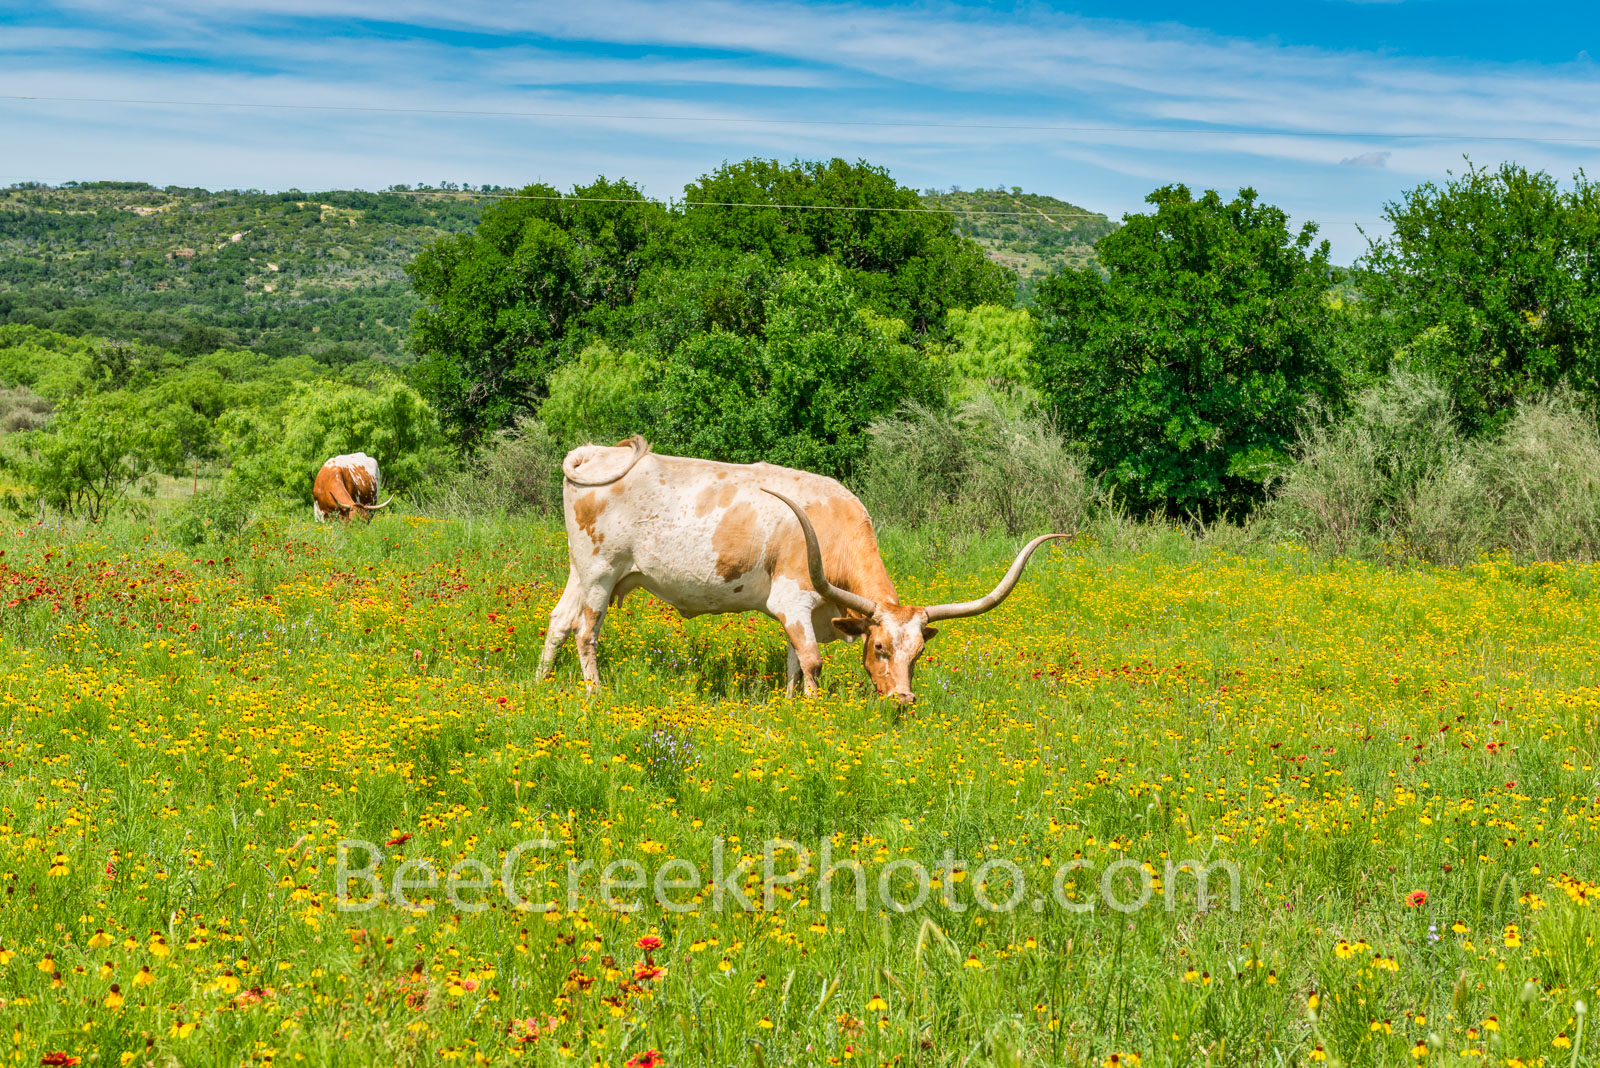 Texas Wildflowers and Longhorns -We capture these longhorns in a field of wildflowers out in the texas hill country on a nice...